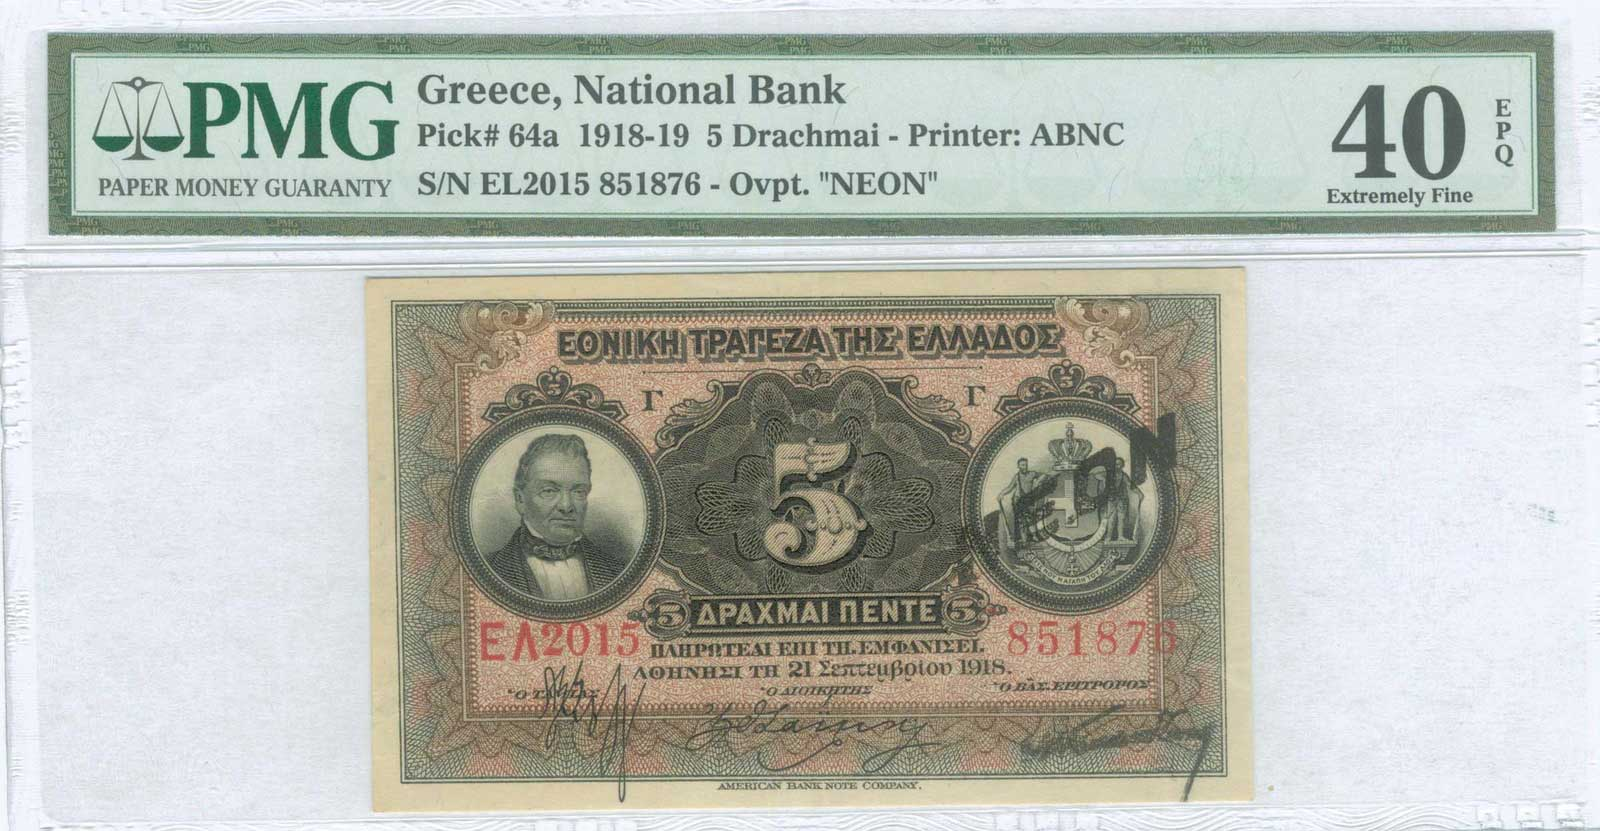 Lot 9293 - GREECE-  PAPER MONEY - BANKNOTES National Bank of Greece -  A. Karamitsos Public & LIVE Bid Auction 606 Coins, Medals & Banknotes